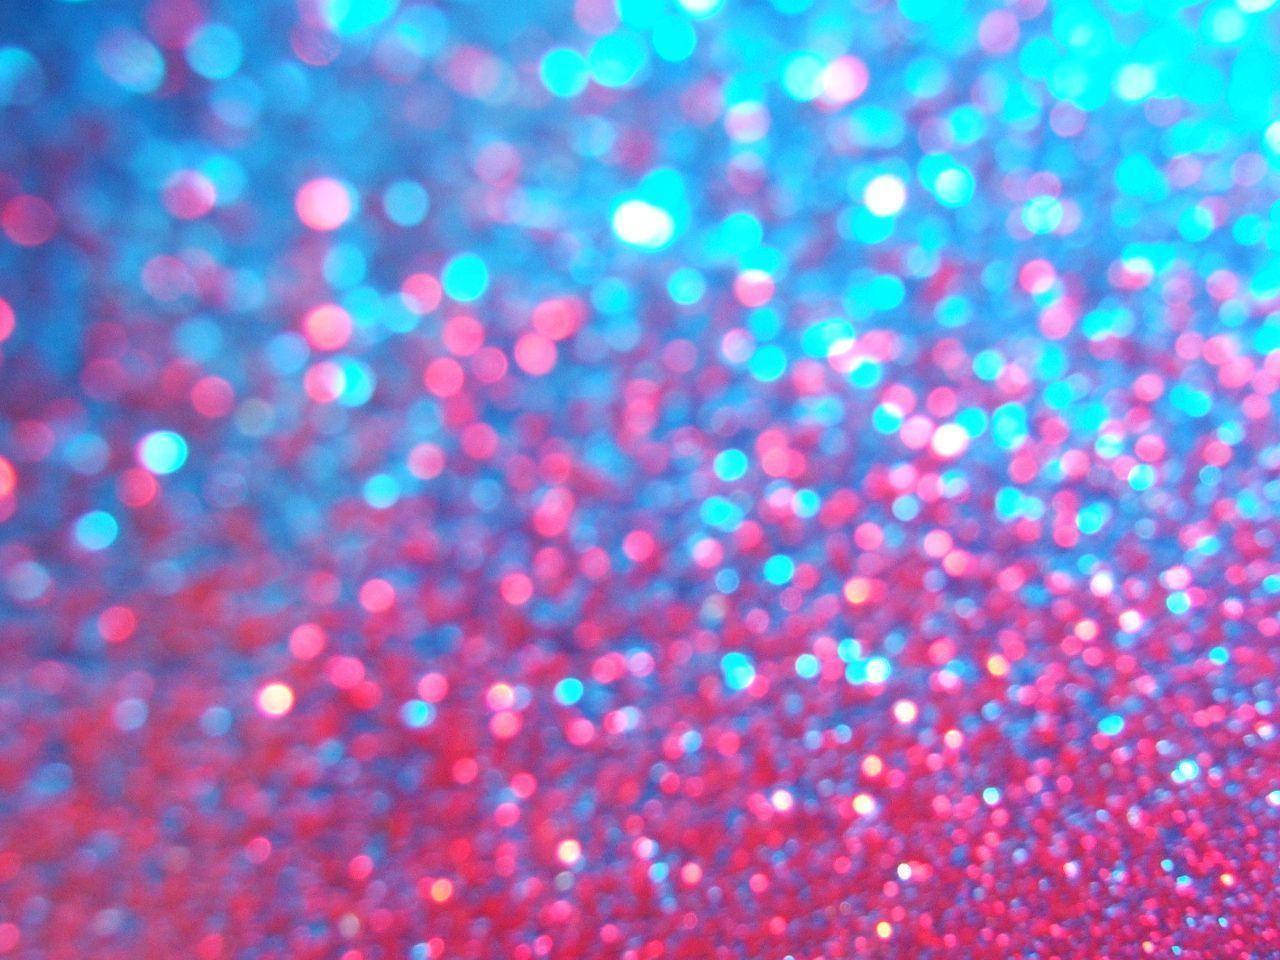 Pretty Pink And Blue Pattern 306989 Images Hd Wallpapers Wallfoy